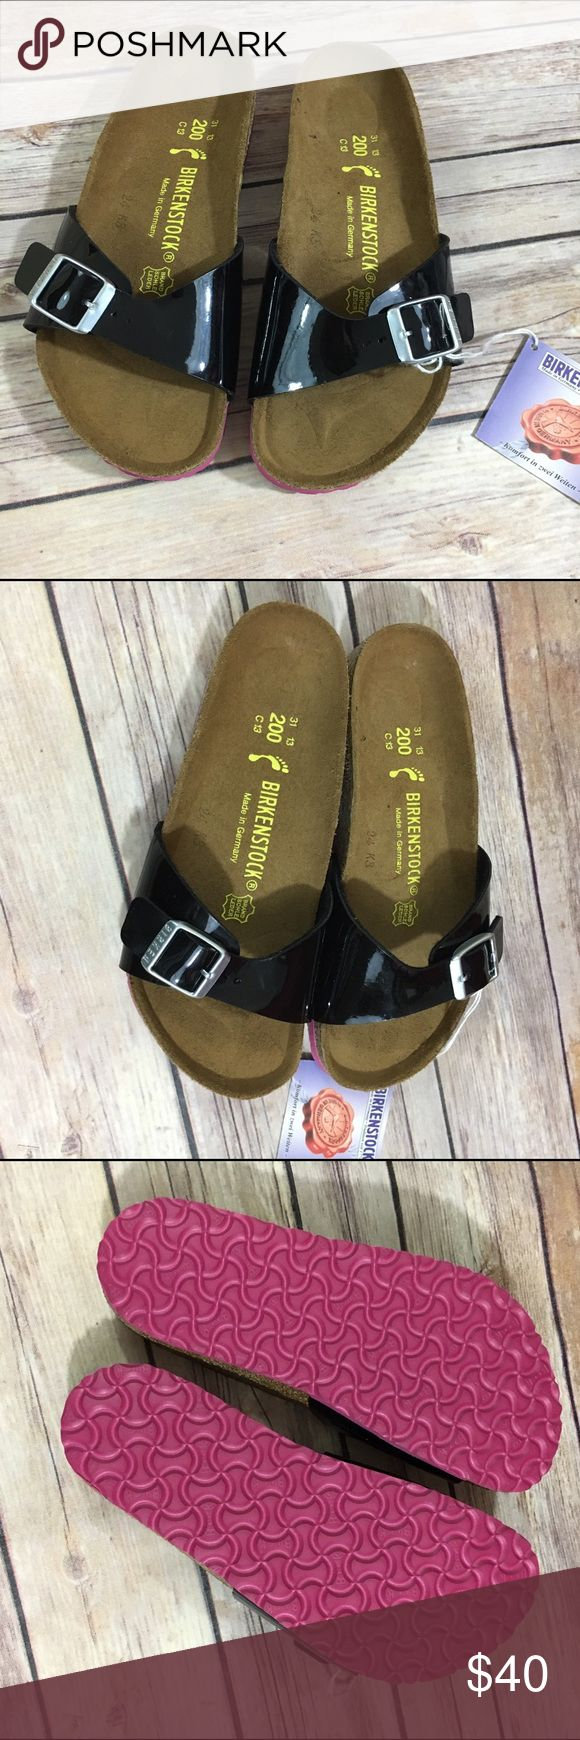 Birkenstock Madrid Black Patent Sandals NEW NWT 13 Birkenstock Madrid Black Patent Sandals NEW NWT 13  These are Euro 31 or kids US 13 (according to the bottom of the shoe).  See last pic for measurement.  Soles are pink.  Super cute.  #new #nwt #madrid #patent #sandals #birkenstock #hippie #black #blackpatent #coolkicks #summer #summerkicks Birkenstock Shoes Sandals & Flip Flops